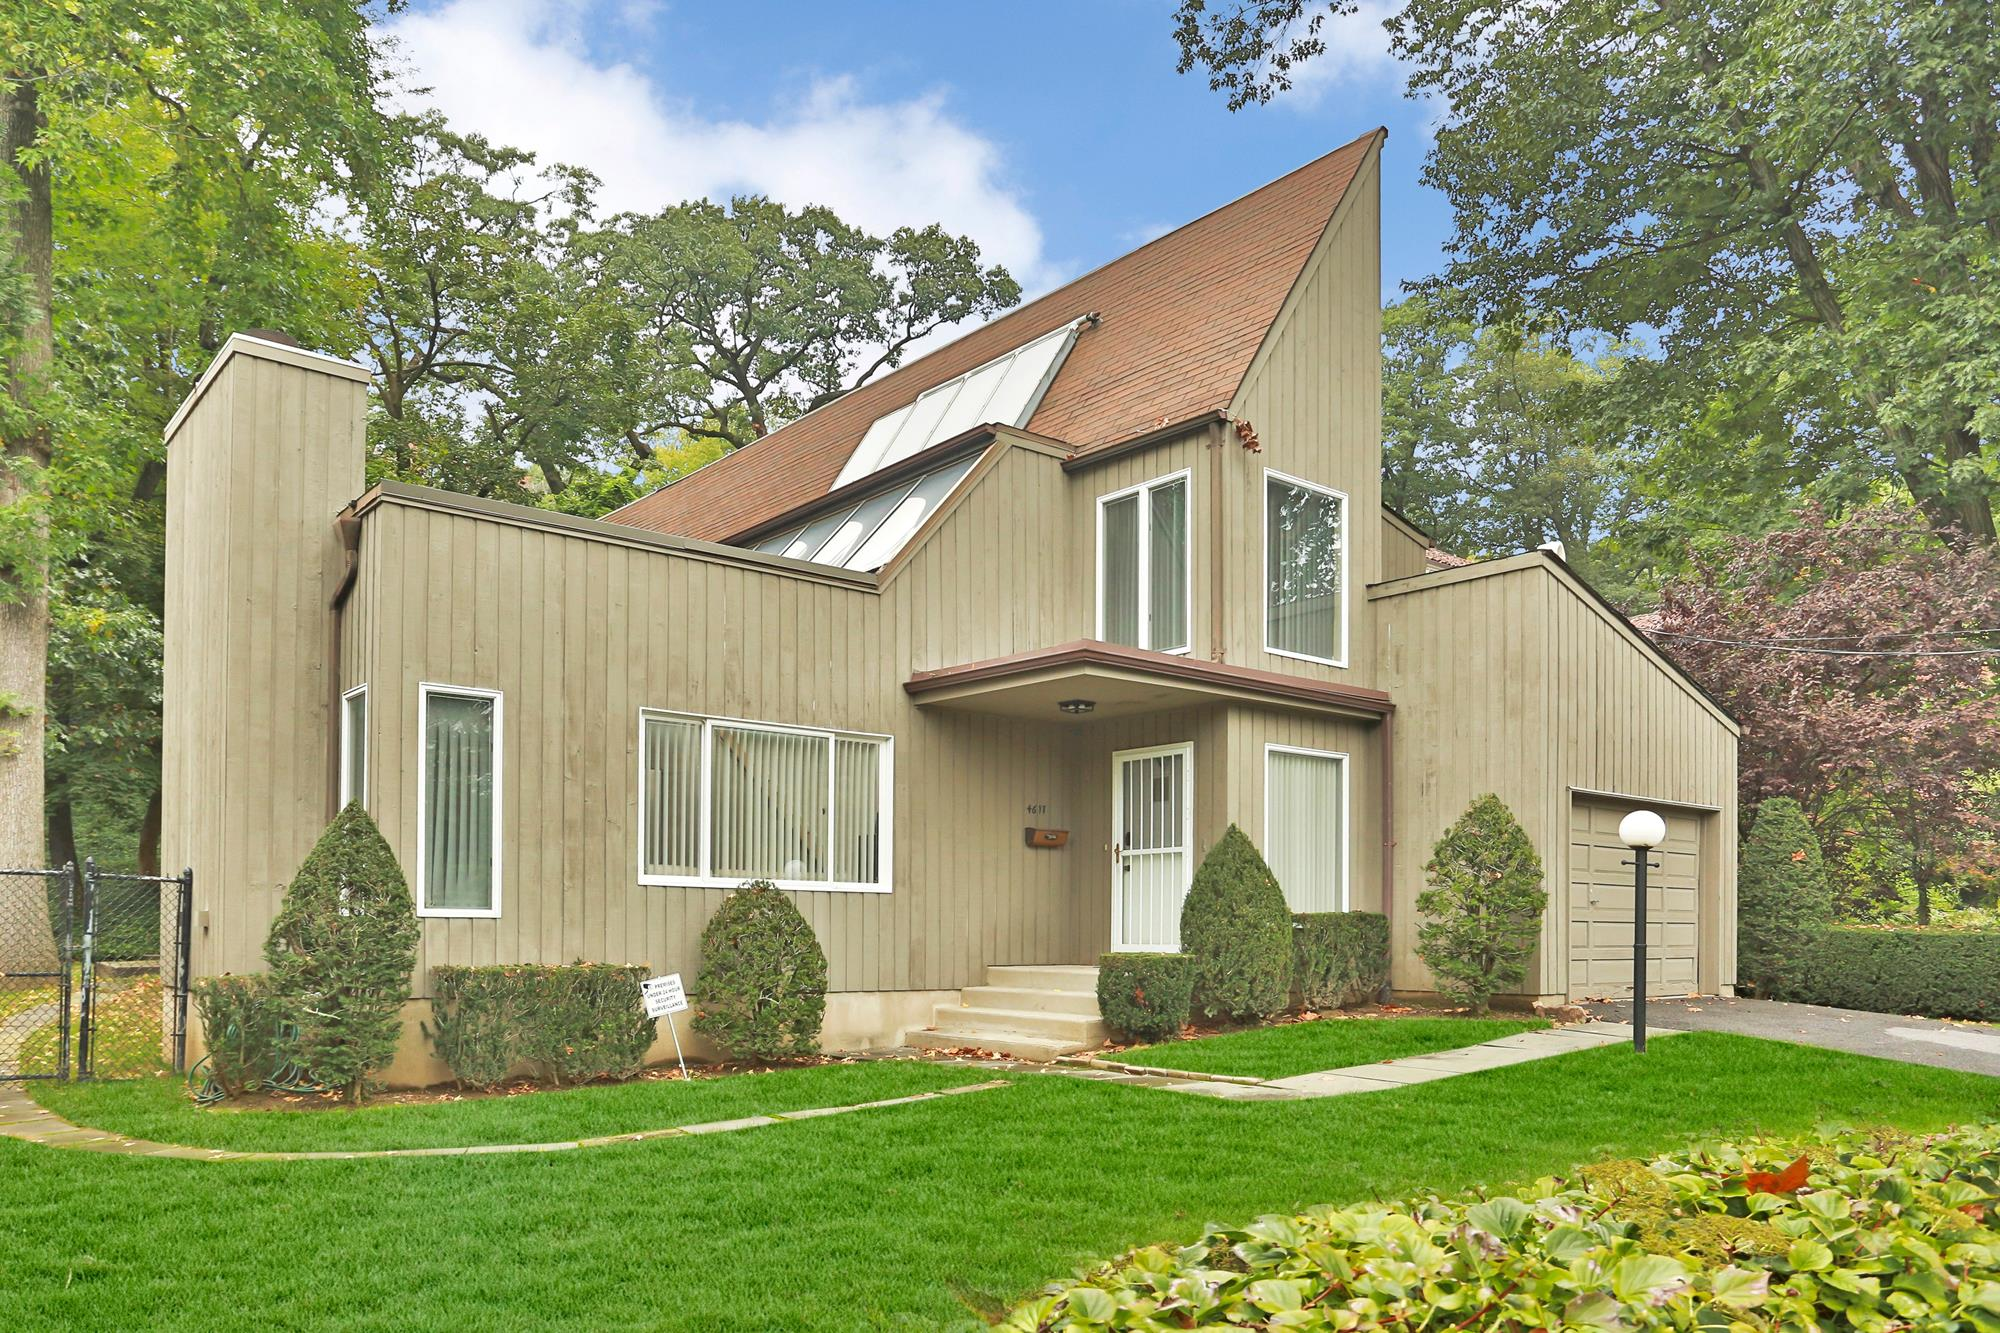 FIELDSTON: Stylish & Bright 4-Bd. Solar House with Patio & Garden